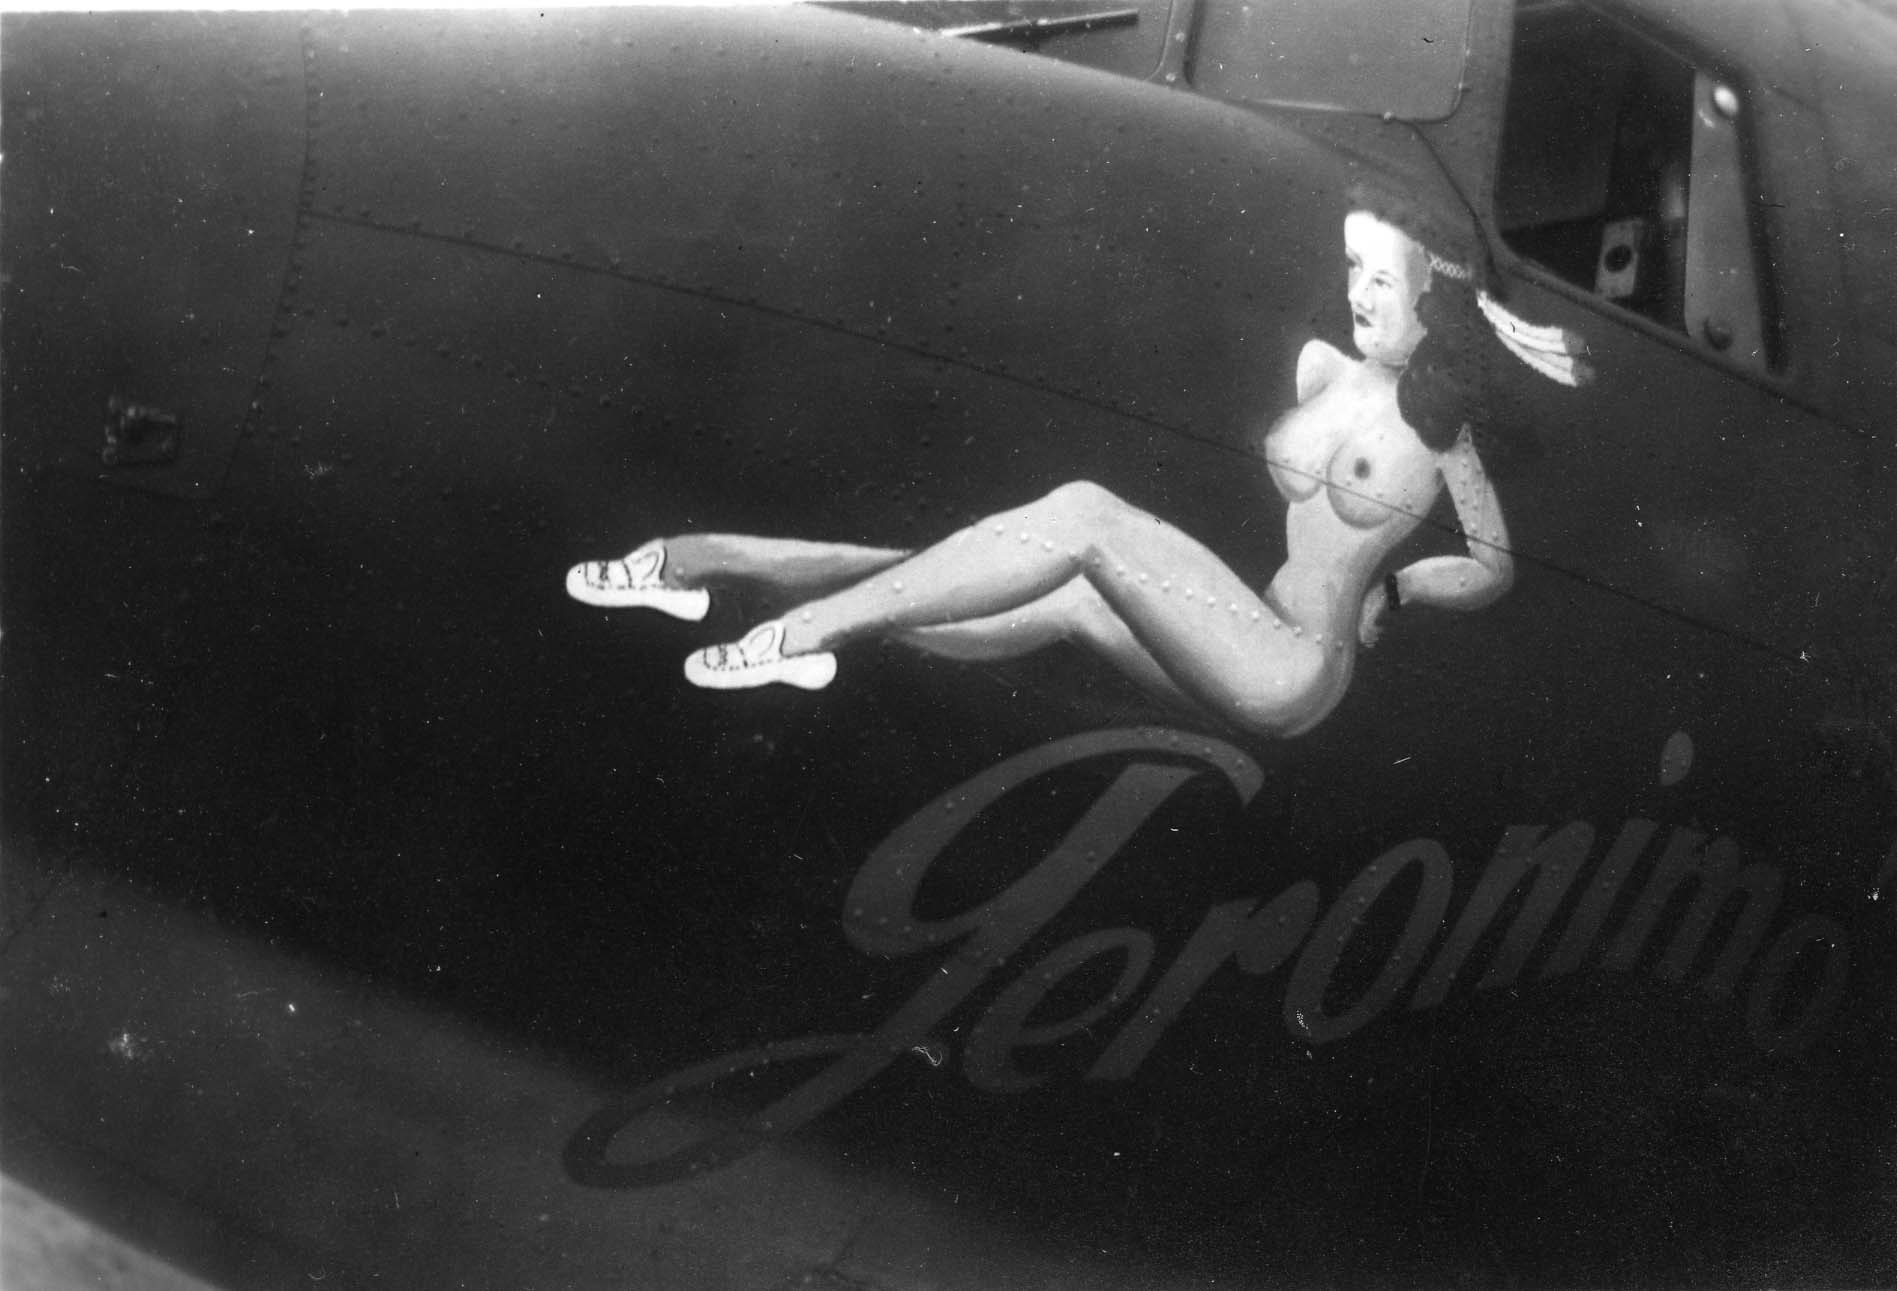 Geronimo : C-47 : Planes from Unknown Groups or Squadrons : Sharpe 18 (Thomas Sharpe Collection)